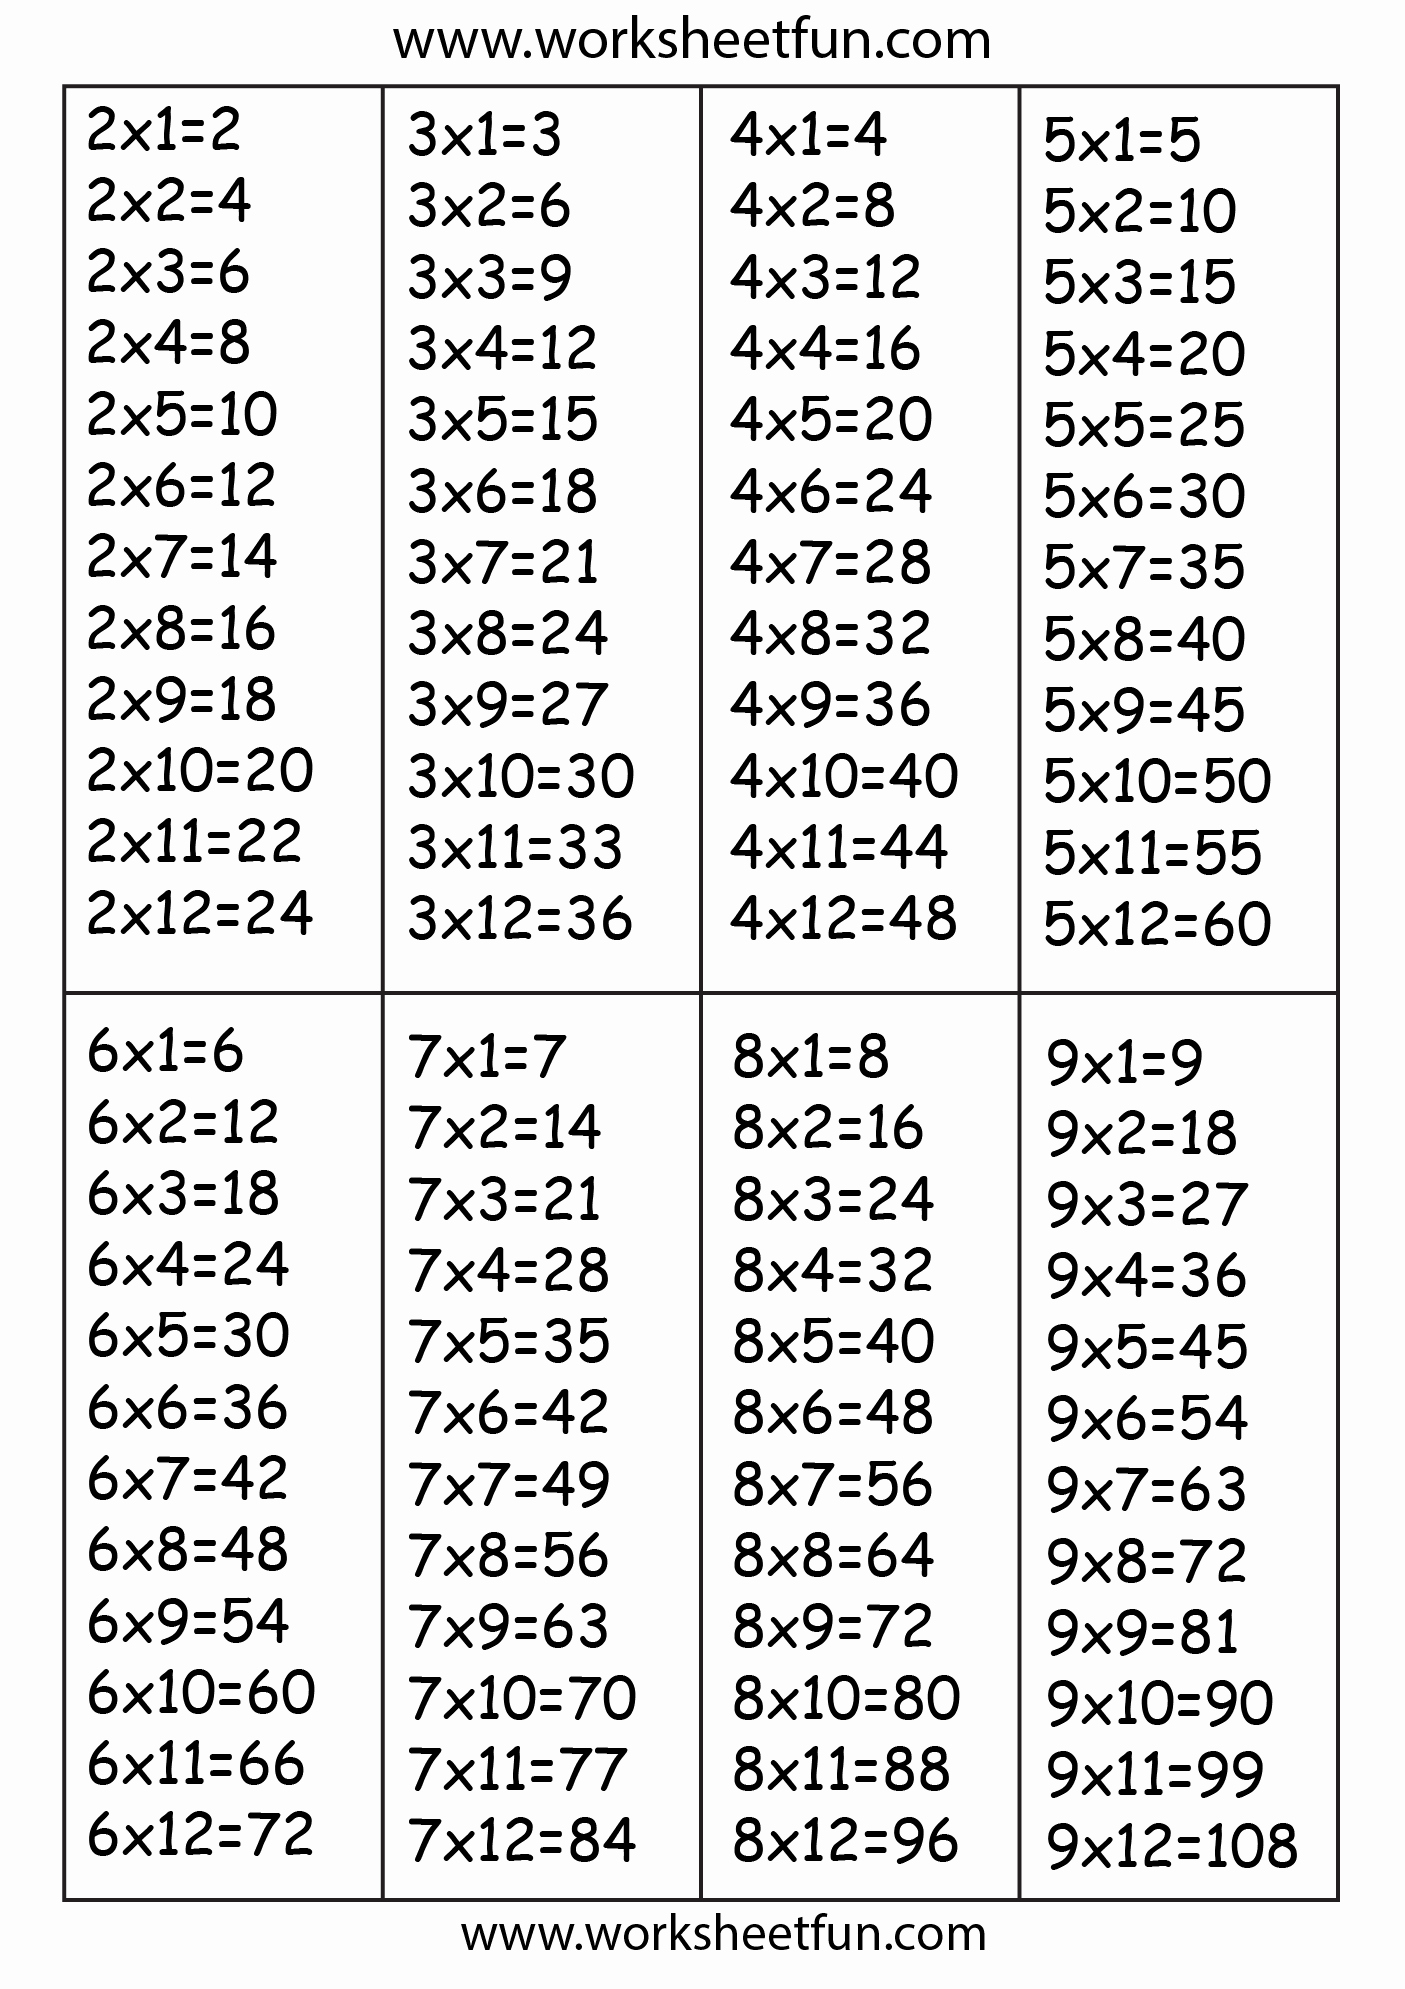 Free Printable Times Tables Beautiful Times Table Chart Printable Worksheets